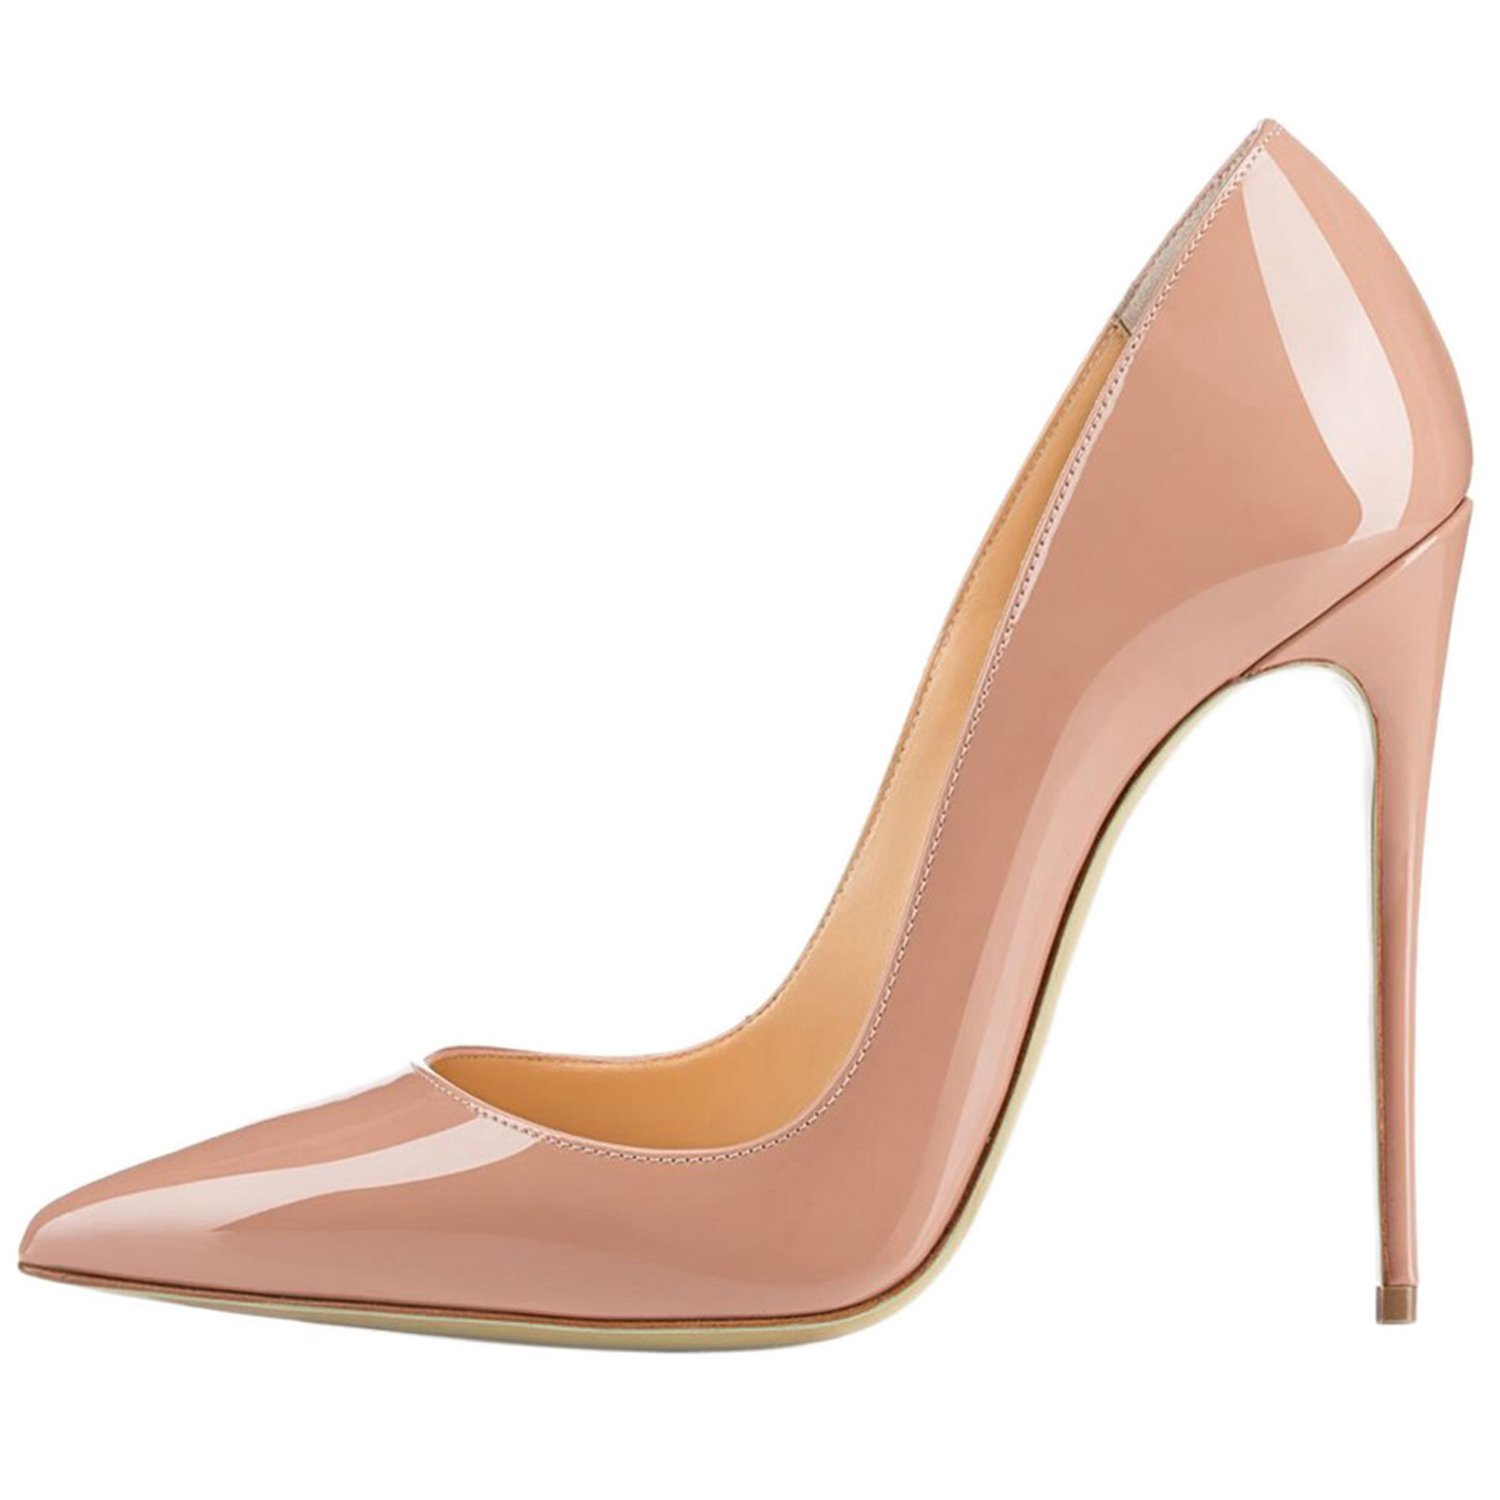 Amarantos Women's AX005 Elegant Heel Pointed Toe Stieletto Dress Pumps Shoes for Party Patent Nude Size 8.5 US